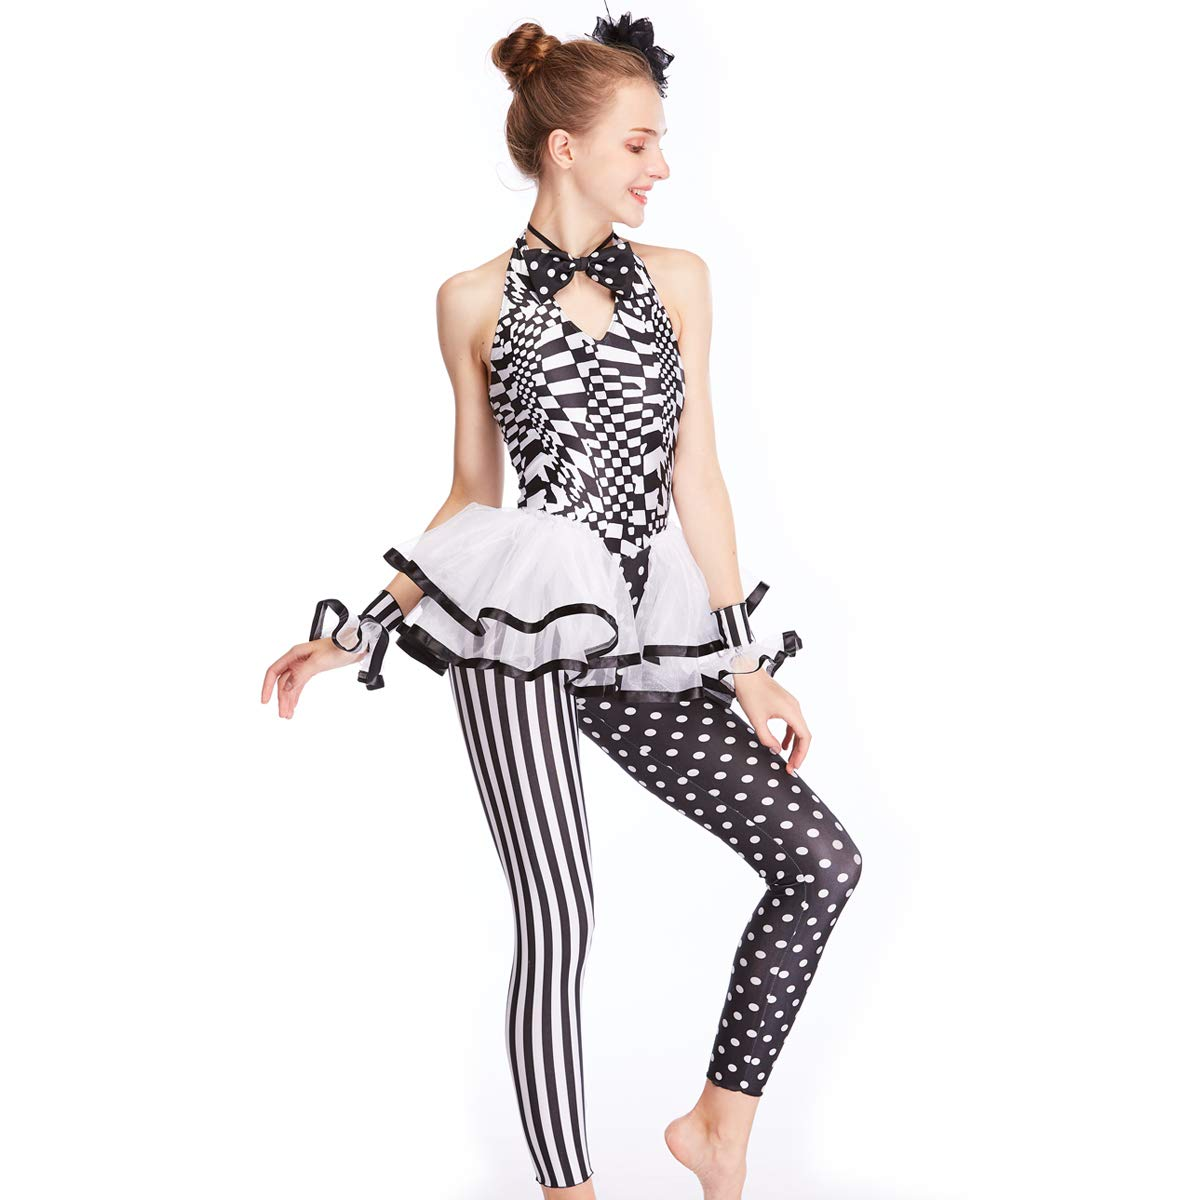 c61a5e5118b5 MiDee Girl's Halter Black-and-White Print Dance Unitard Hip Hot Outfits:  Amazon.co.uk: Clothing